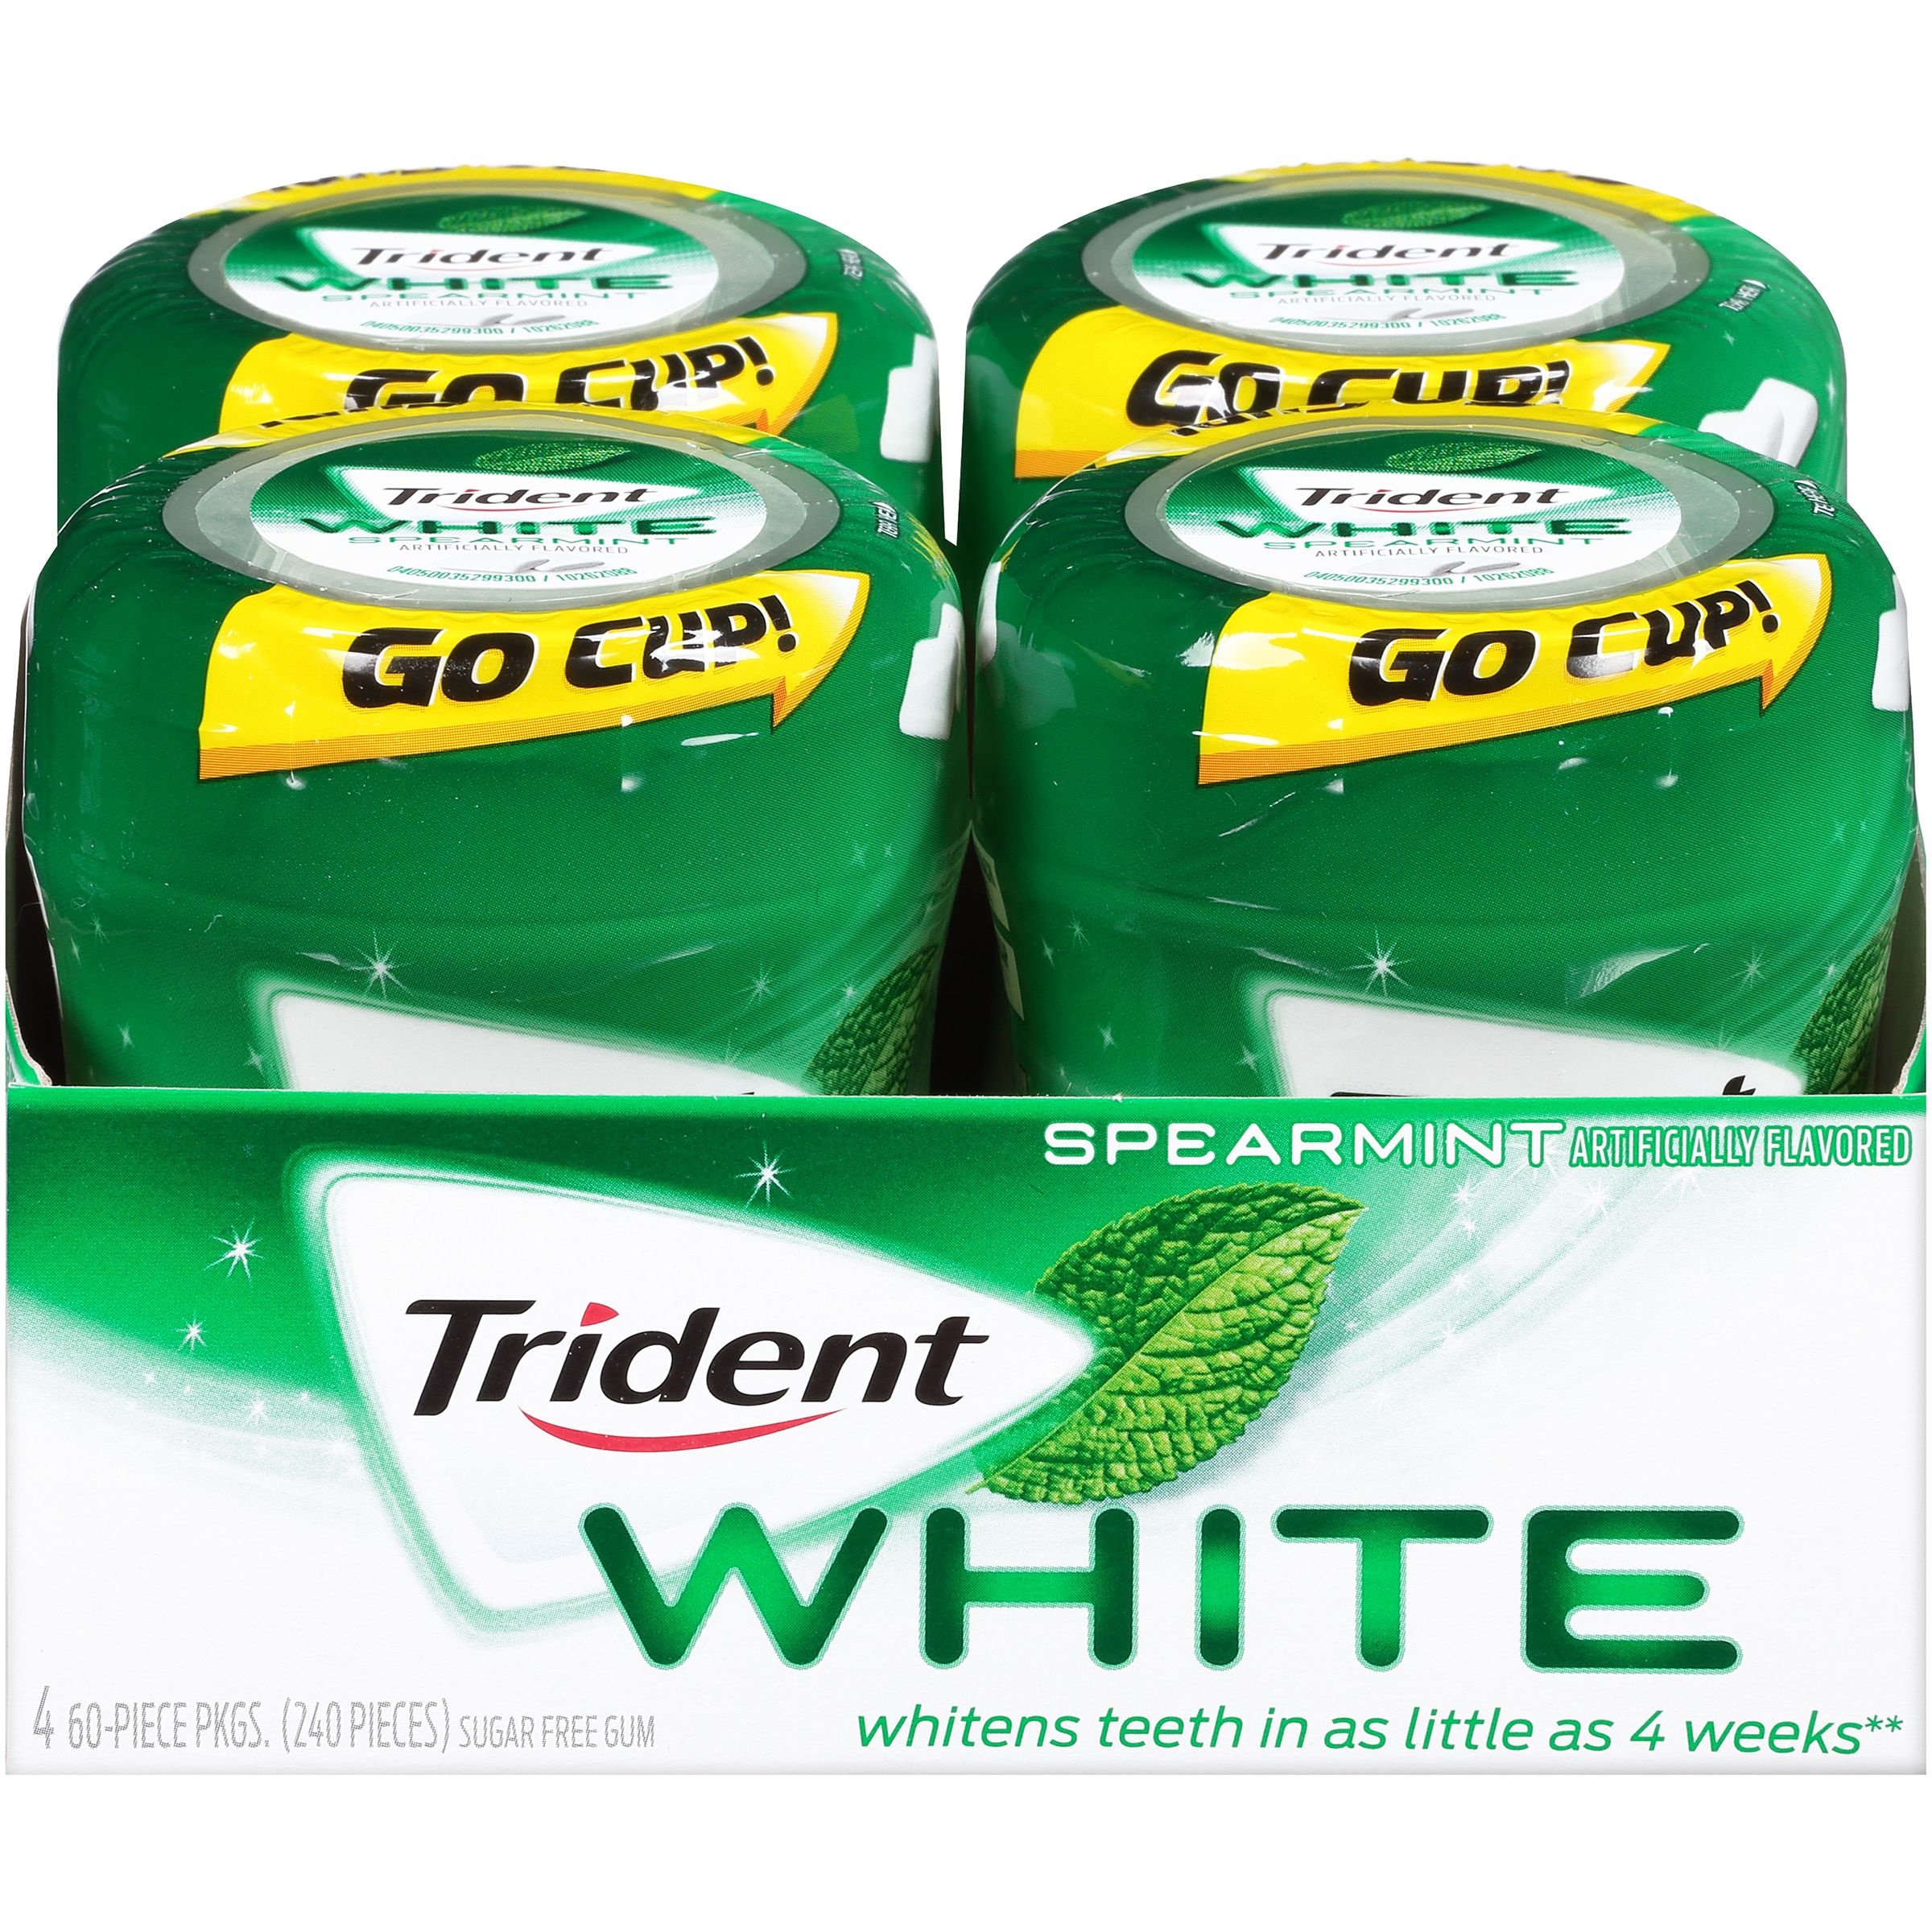 Trident White, Sugar Free Unwrapped Spearmint Chewing Gum, 60 Pcs, 4 Ct